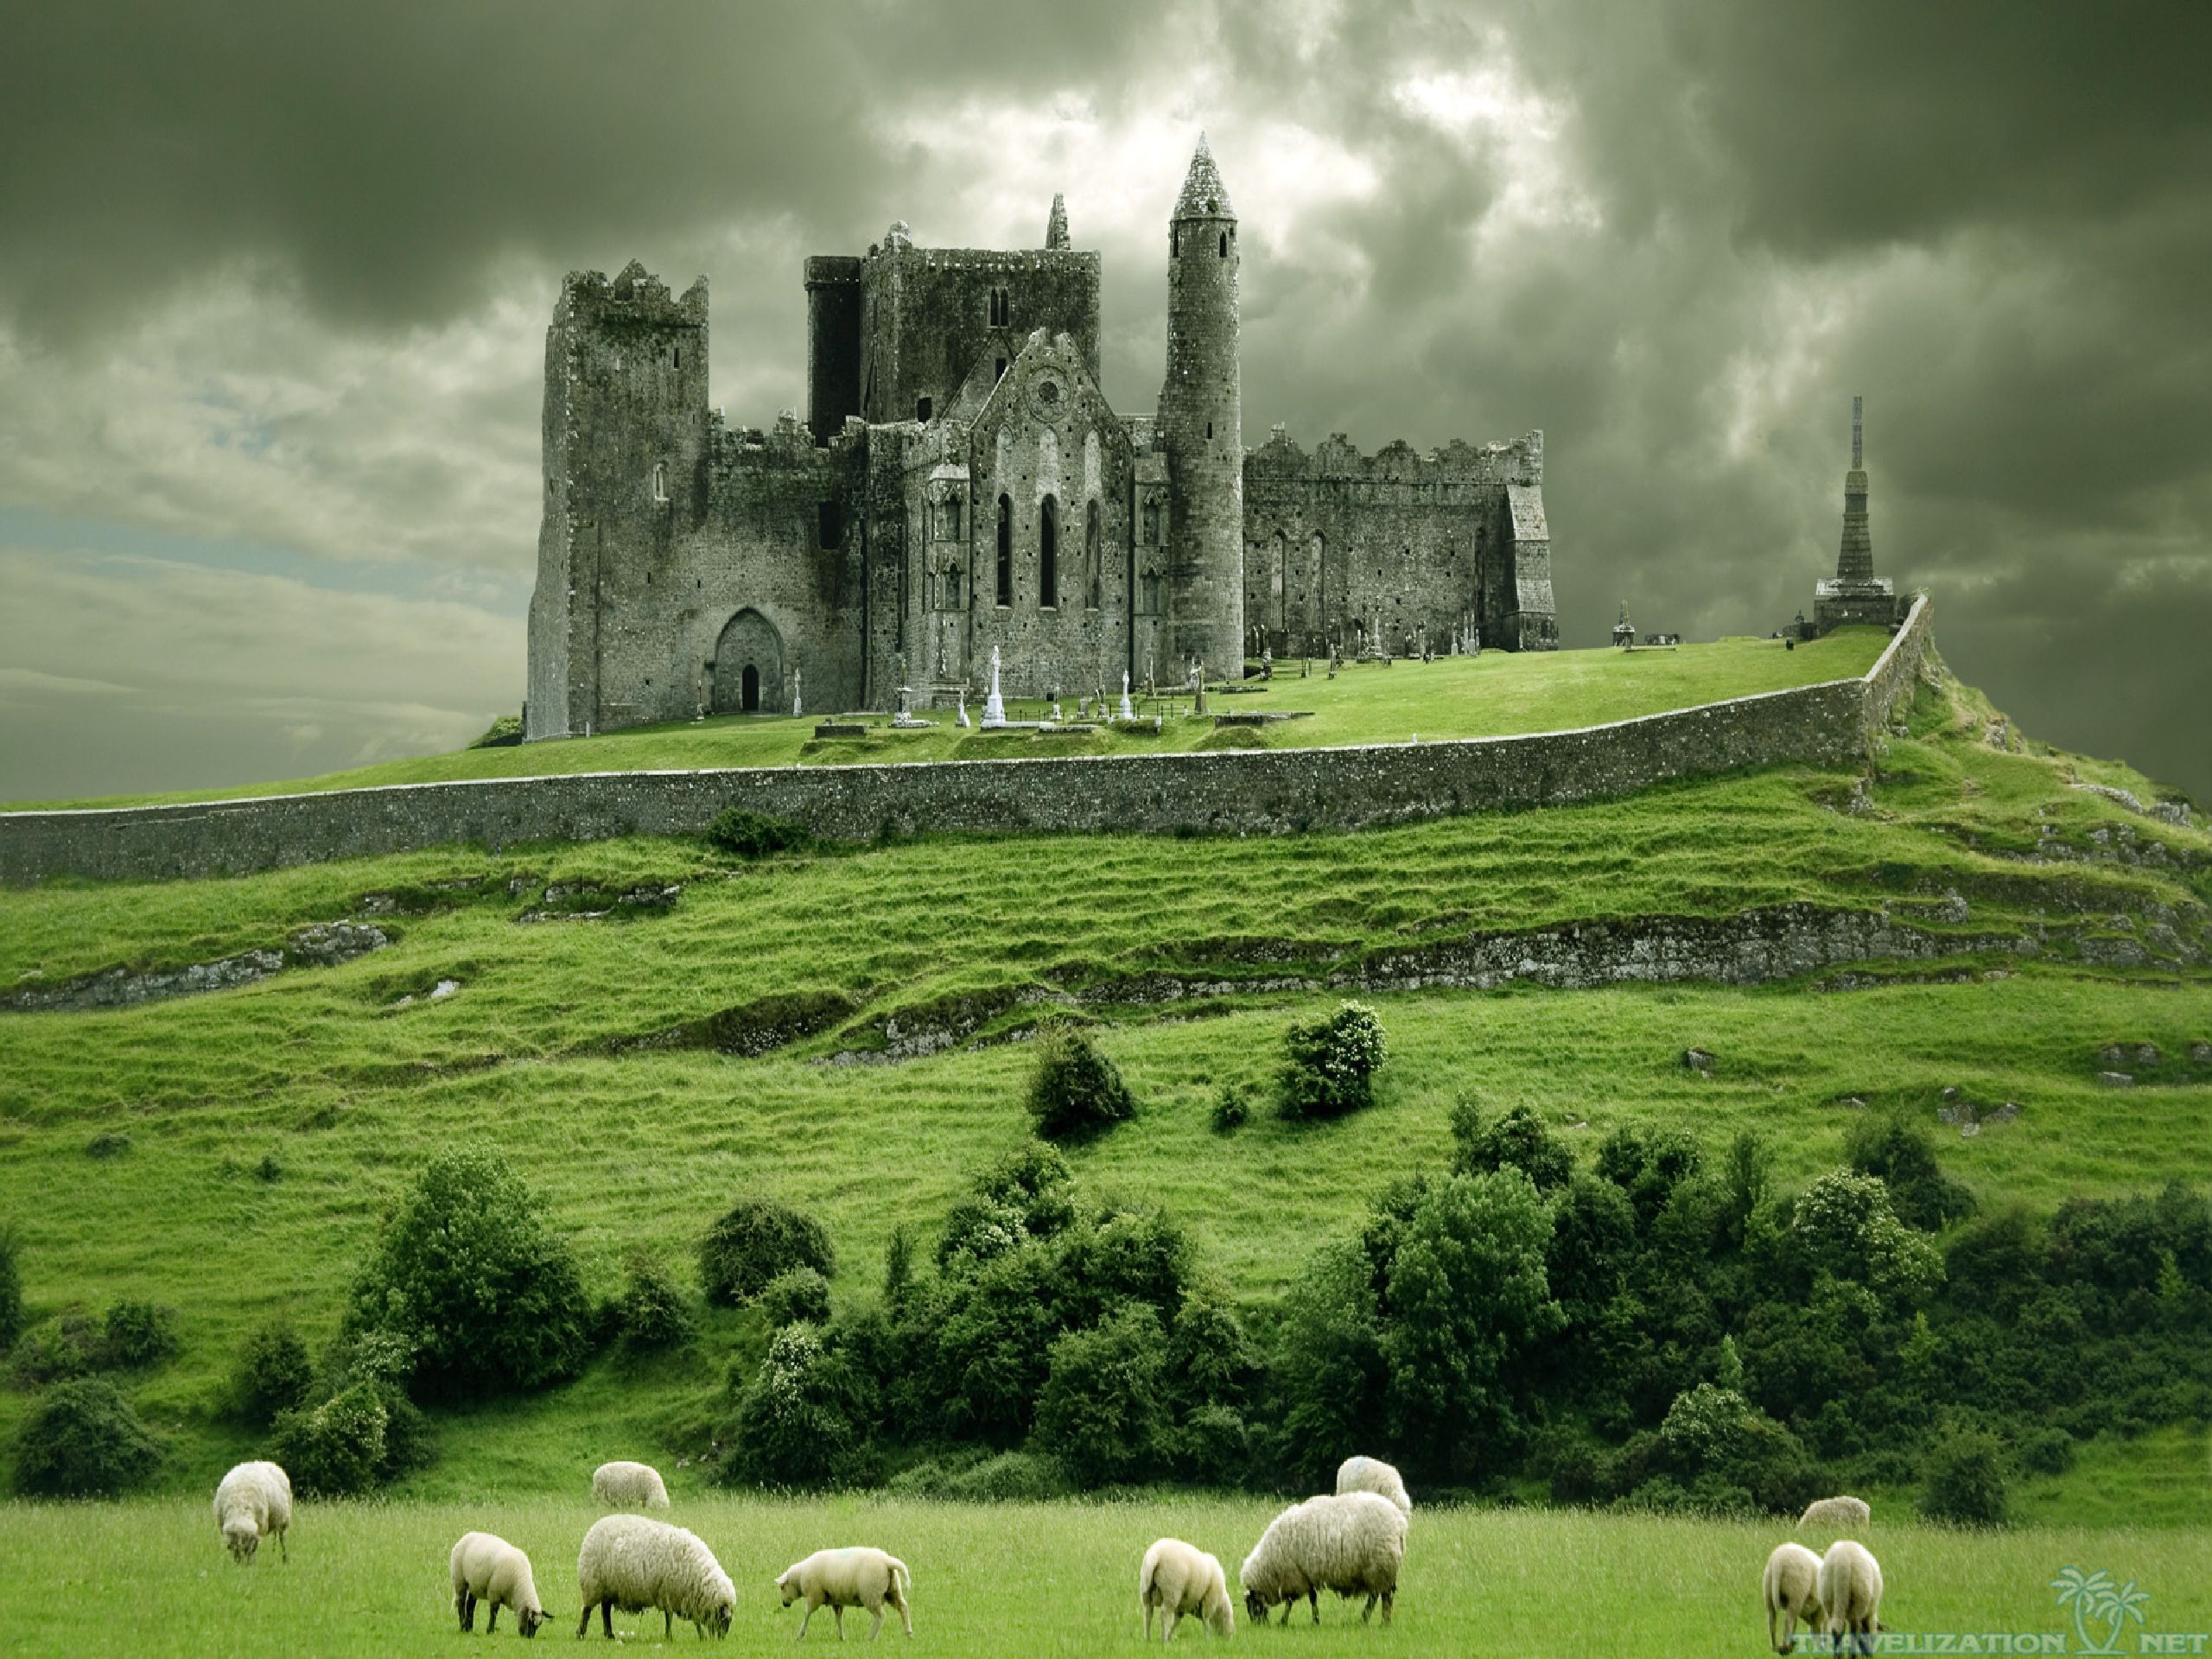 Beautiful Ireland Ireland Landscape Photos Widescreen 2 Hd Wallpapers Ireland Landscape Irish Countryside Irish Landscape